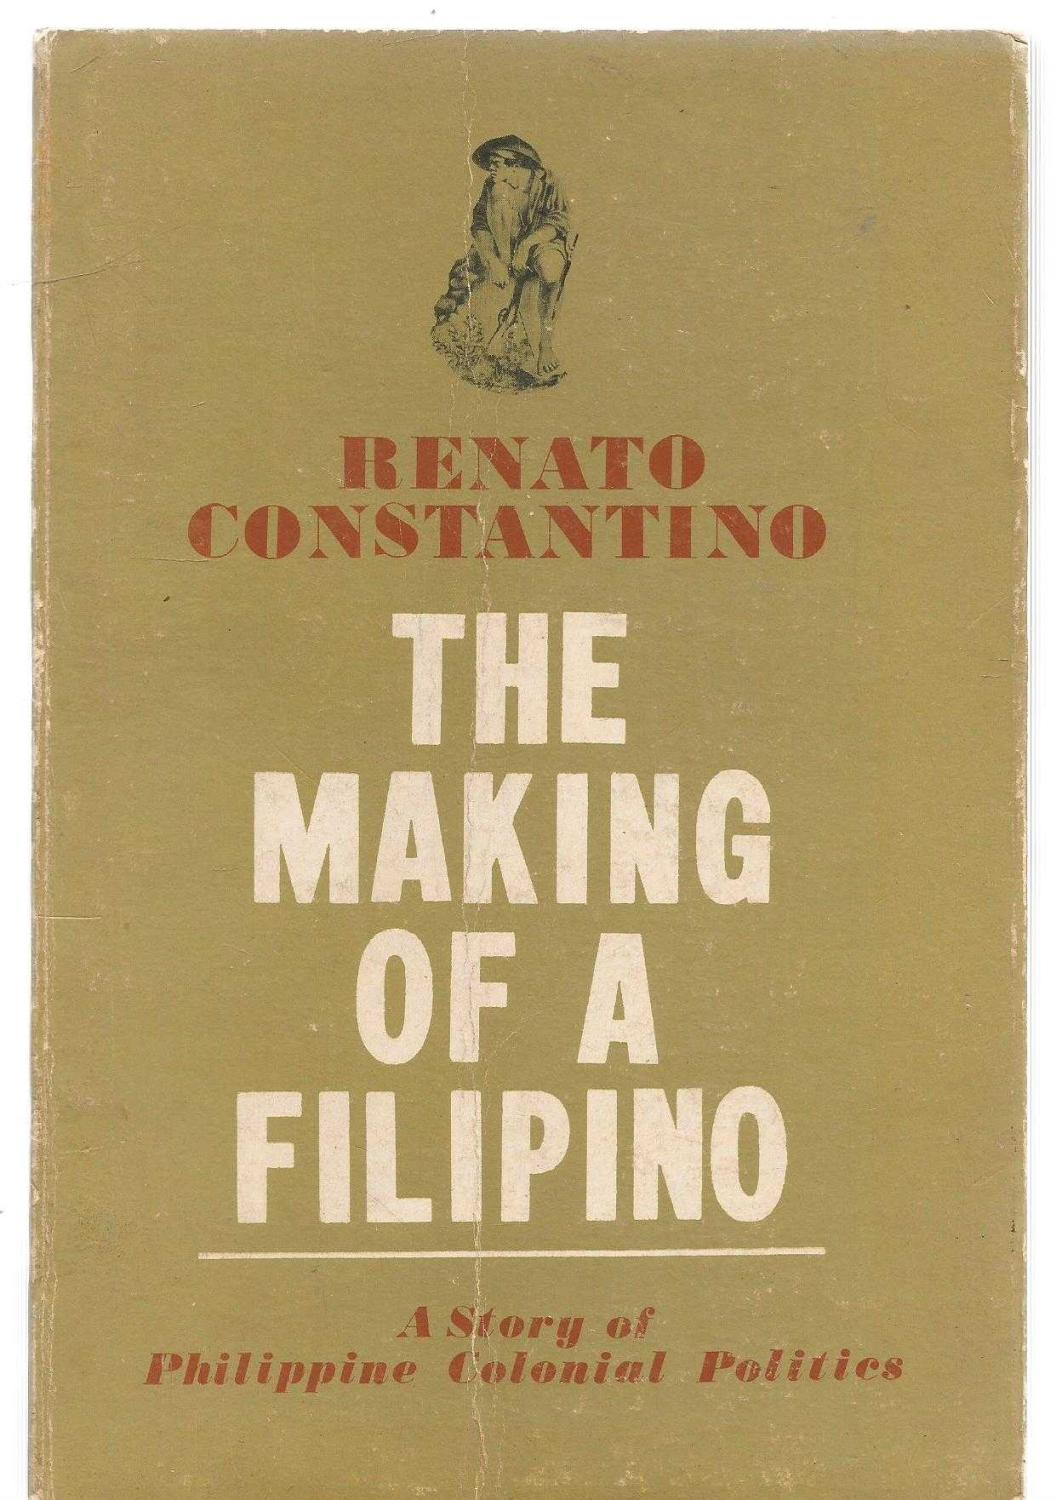 The Making of the Philippines